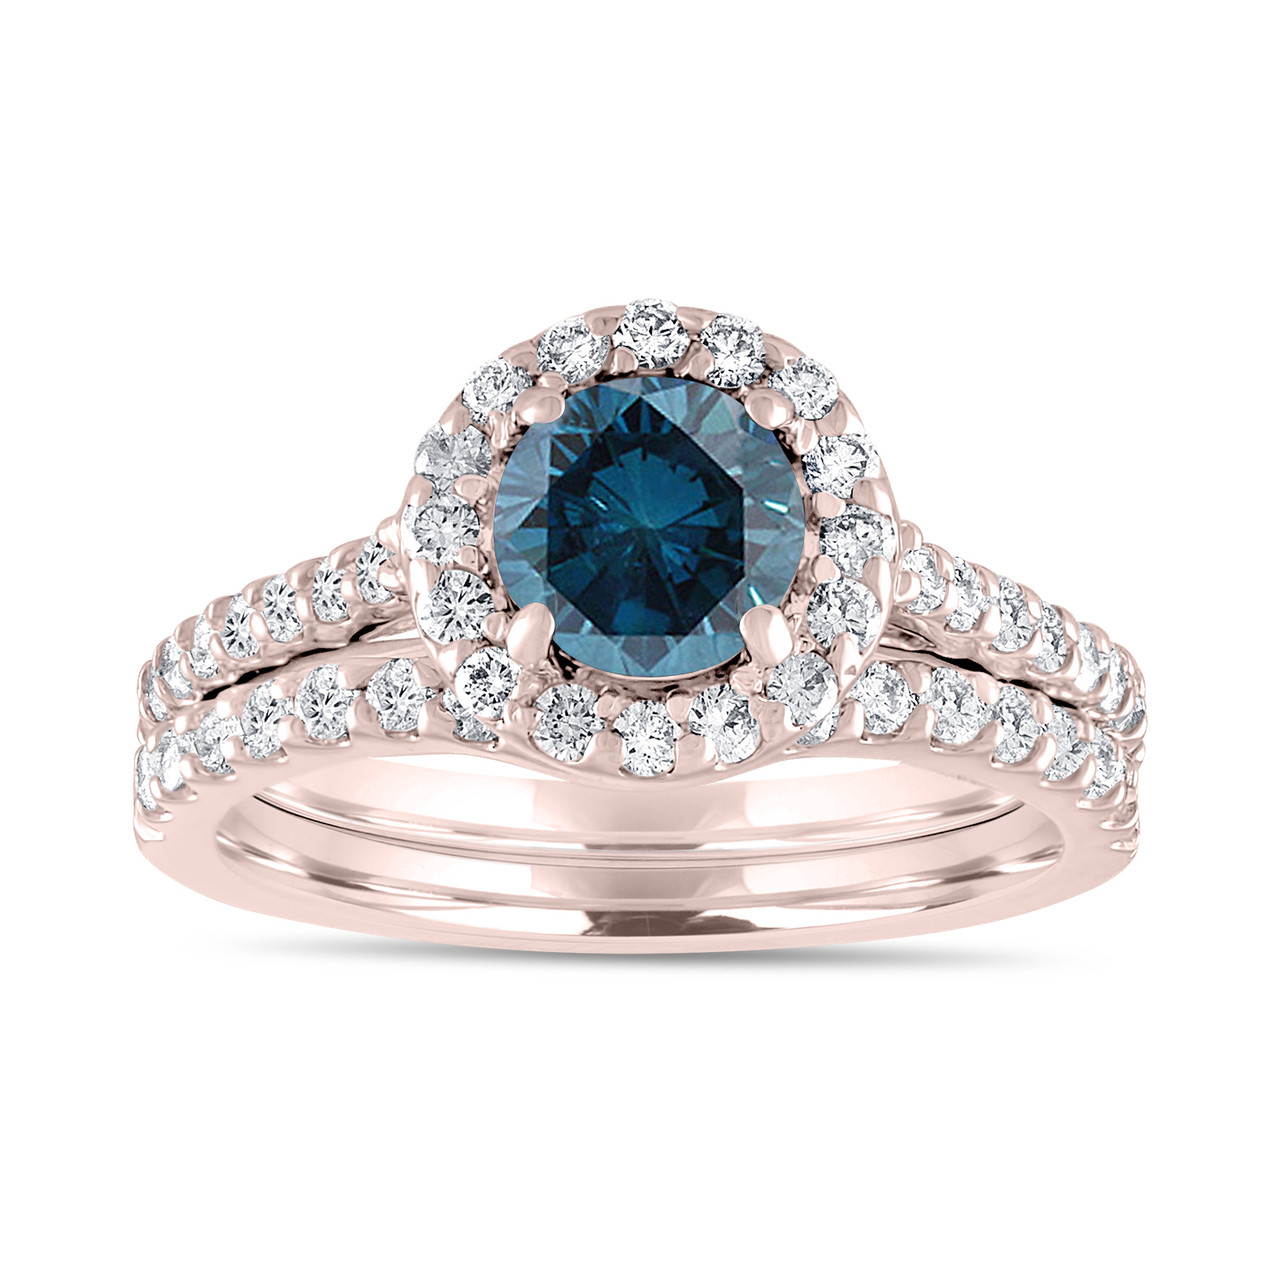 Image result for 1.84 Carat Fancy Blue Diamond Engagement Ring Set, Bridal Wedding Rings Set, 14K Rose Gold Unique Halo Pave Certified Handmade